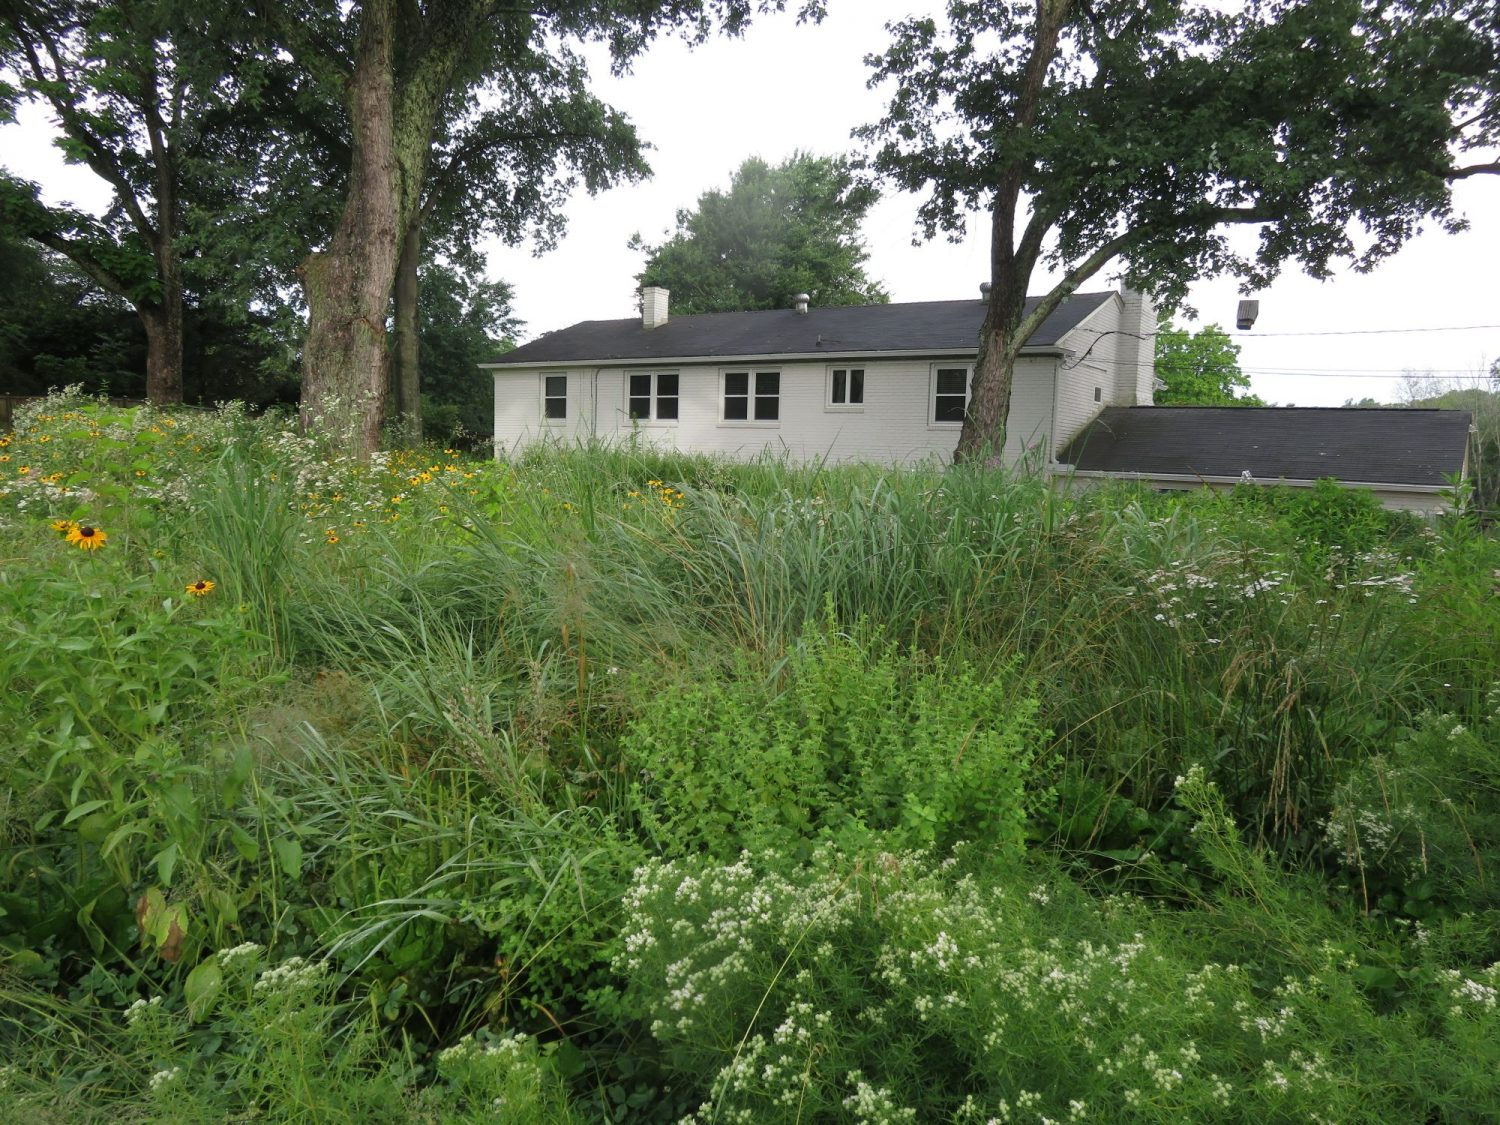 Native lawn in front of a small, white home